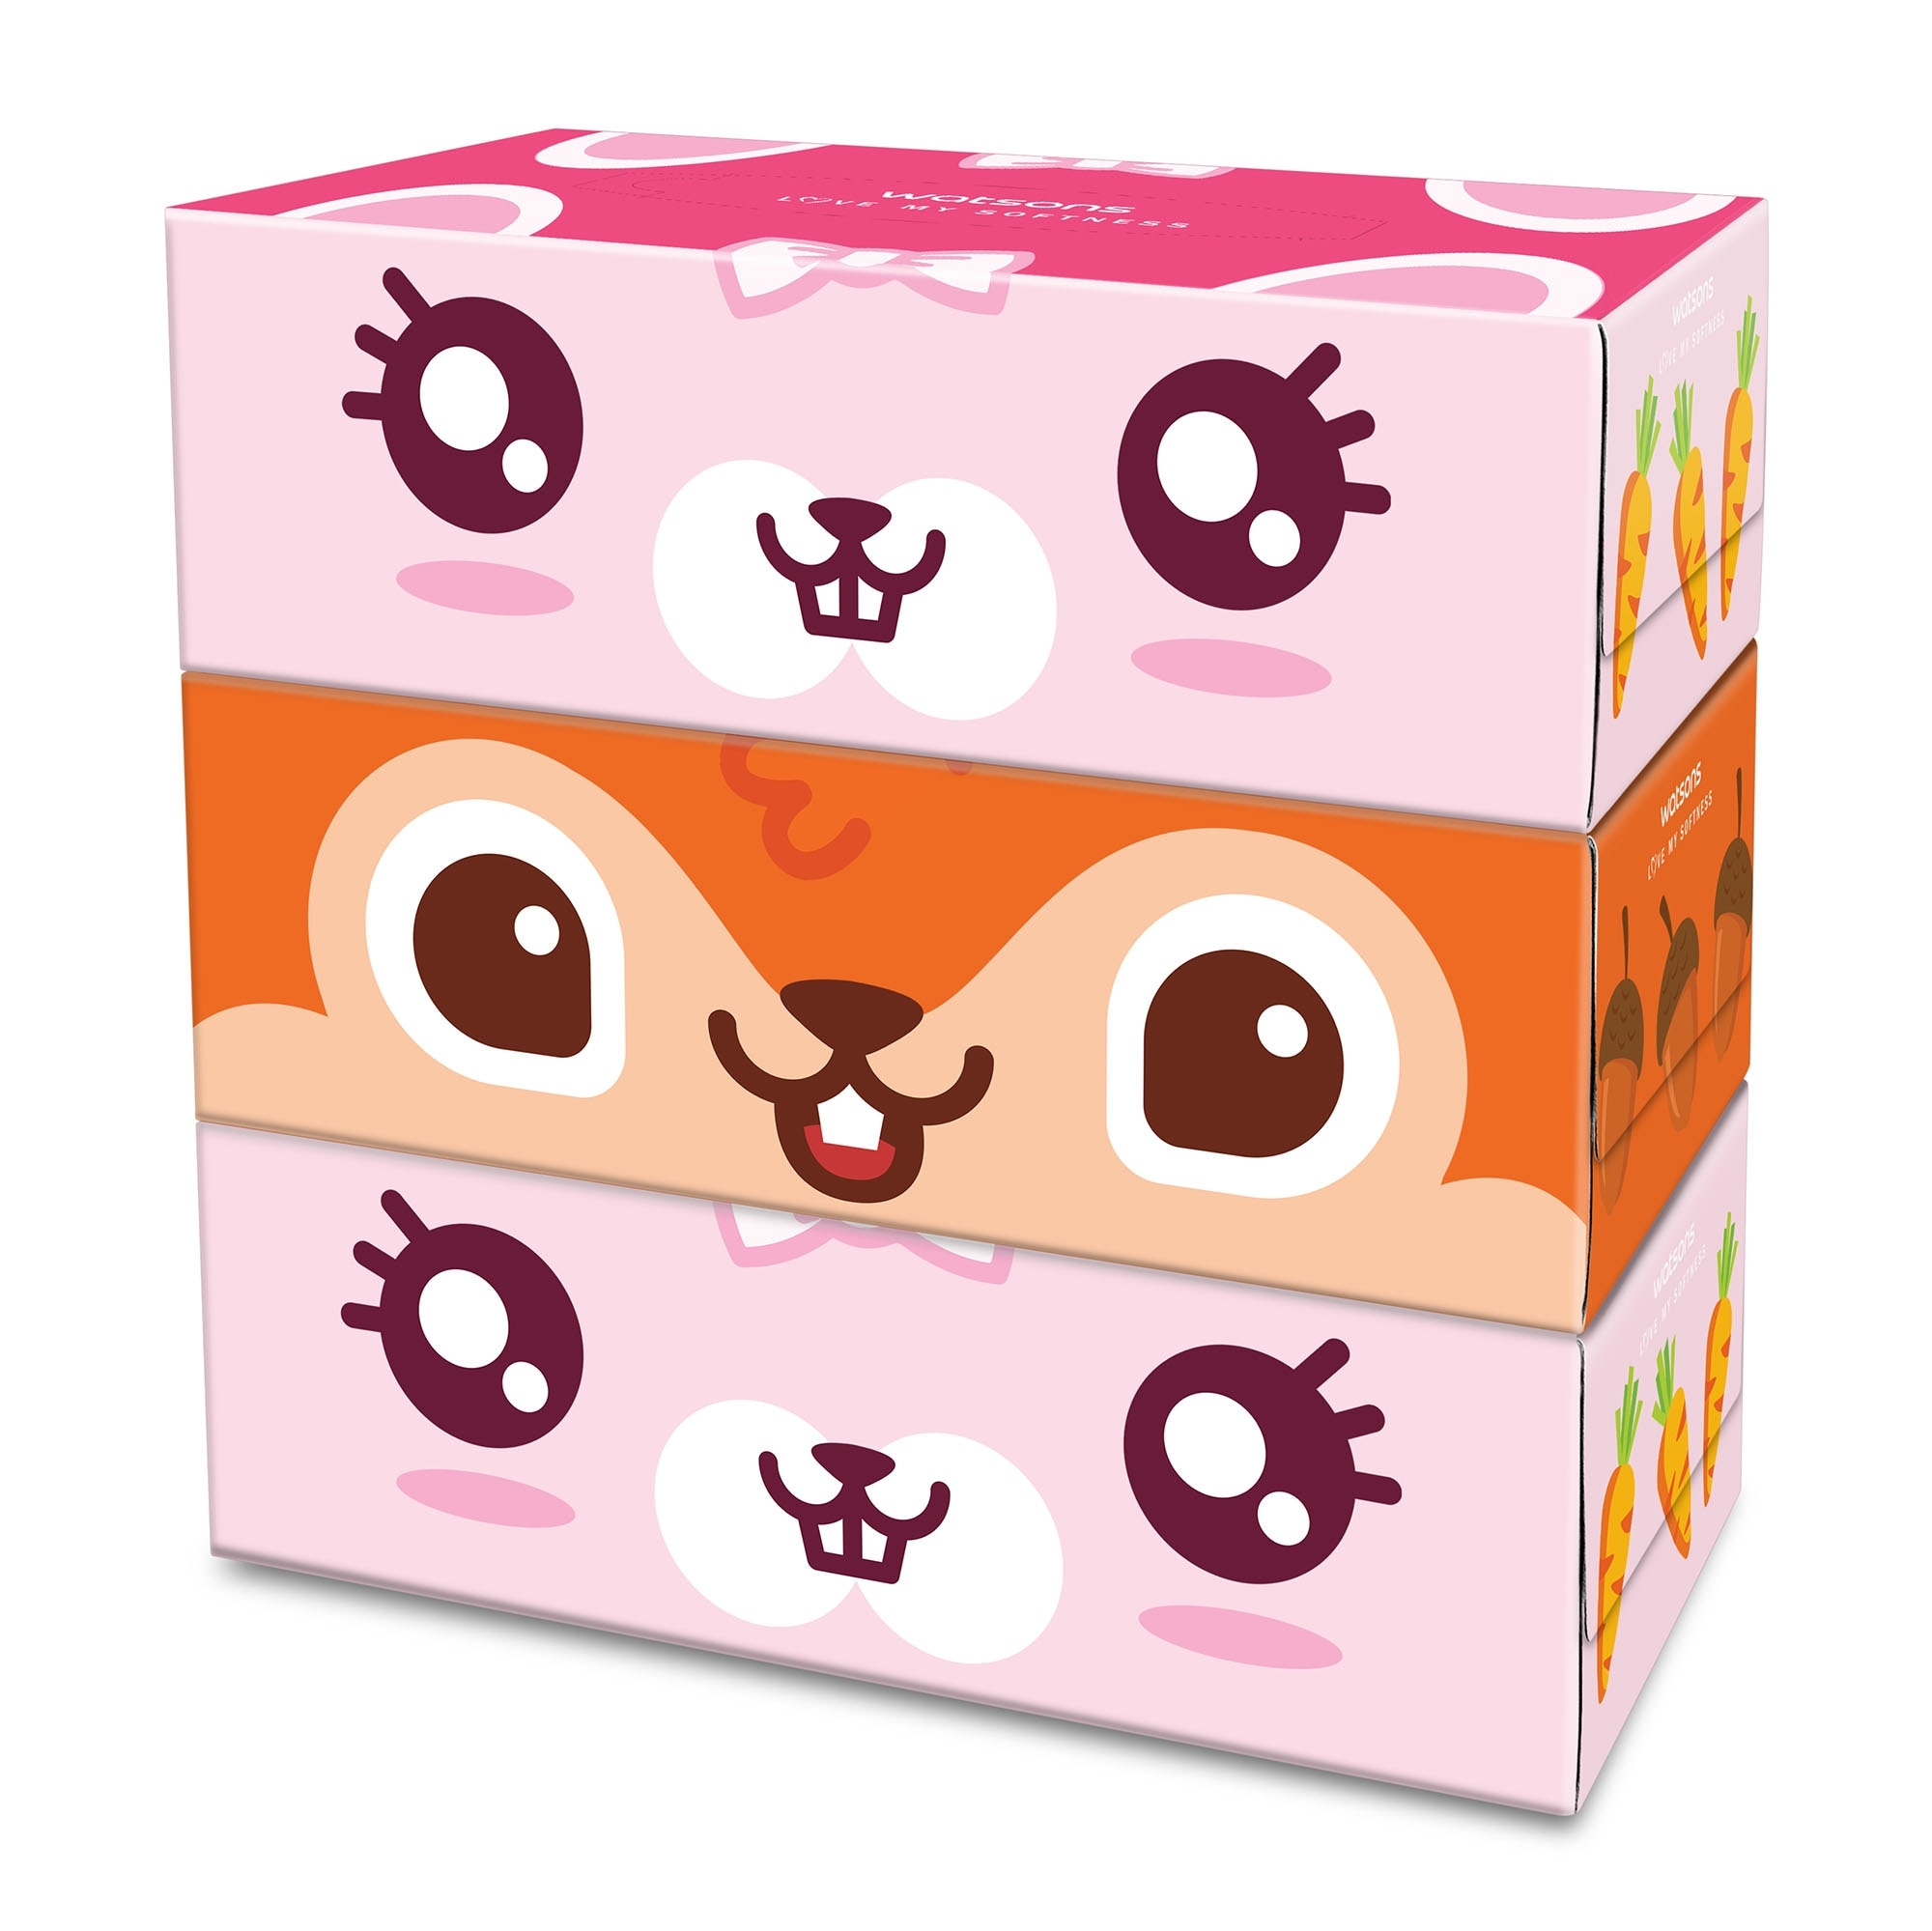 WATSONSFun Design Rabbit and Squirrel 3ply 100 Sheets 3 Boxes,Face and Body Wipes